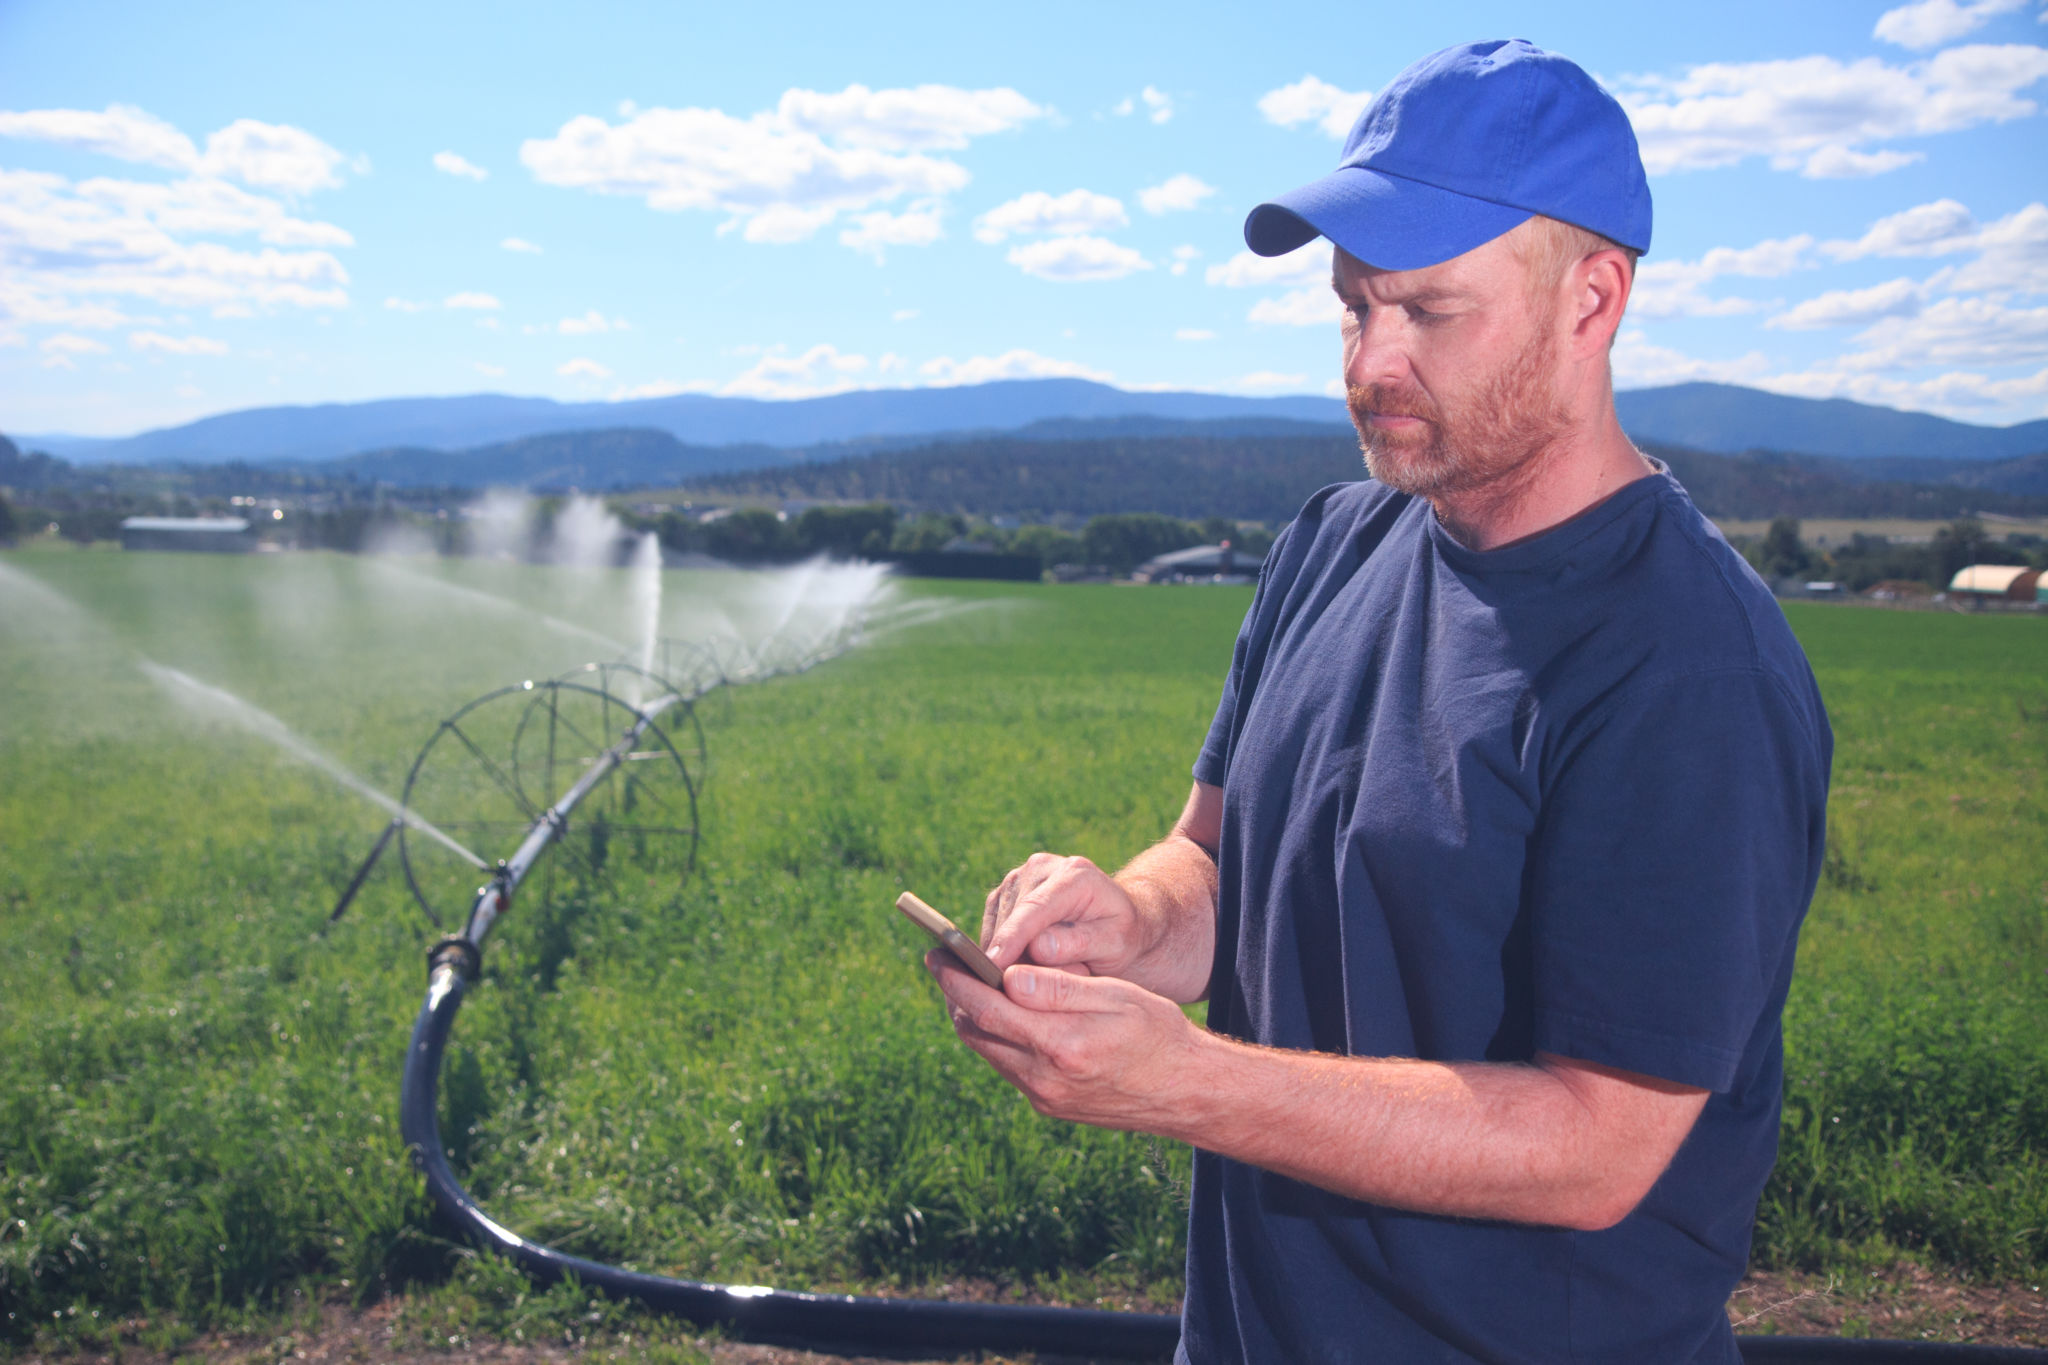 A royalty free image from the farming industry of a farm worker in front of an irrigated field using a smartphone to text or make a calll.